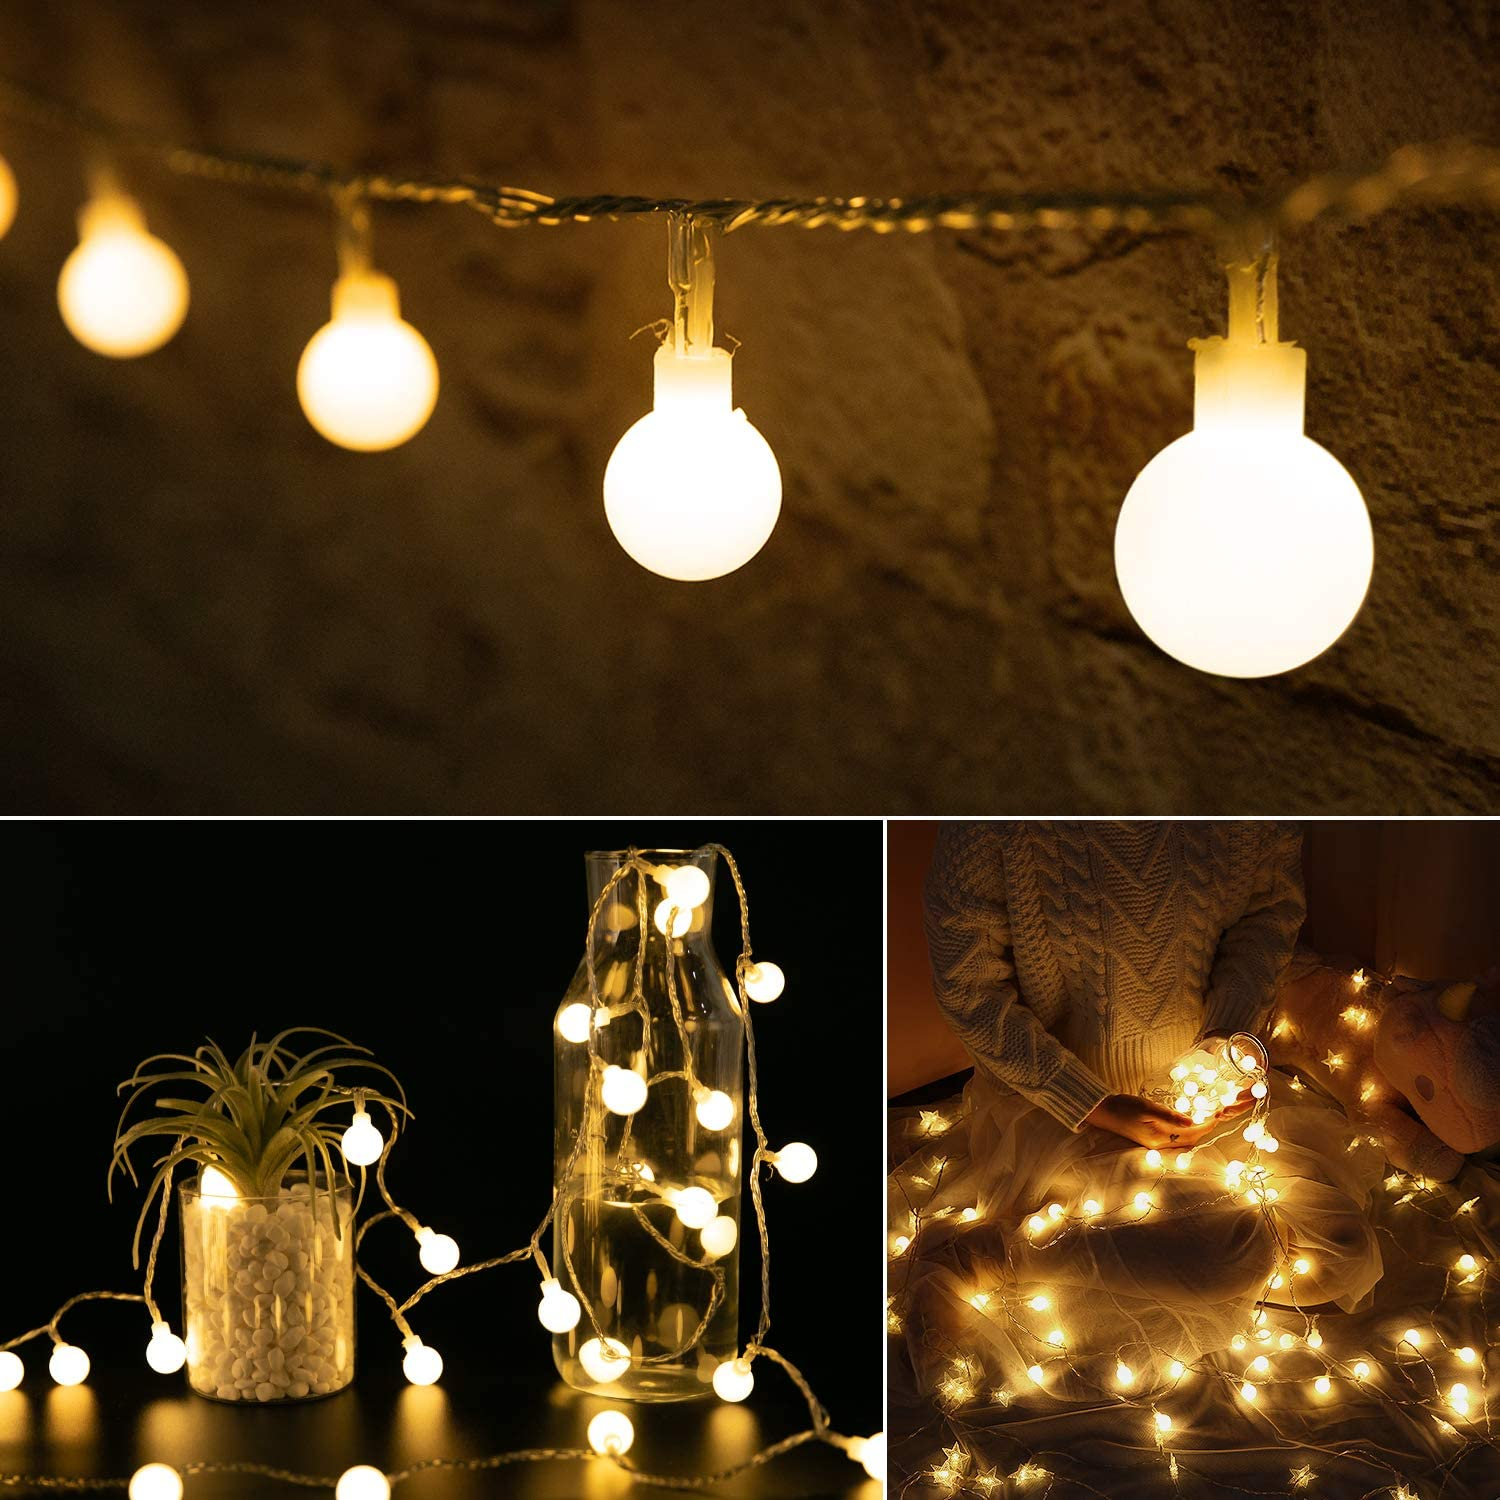 Mini Globe String Lights: 33 Ft 100 LED Ball Lights Plug in | Waterproof Plug & Remote | Decor for Bedroom Wall Christmas Tree Indoor Outdoor Wedding | Warm White